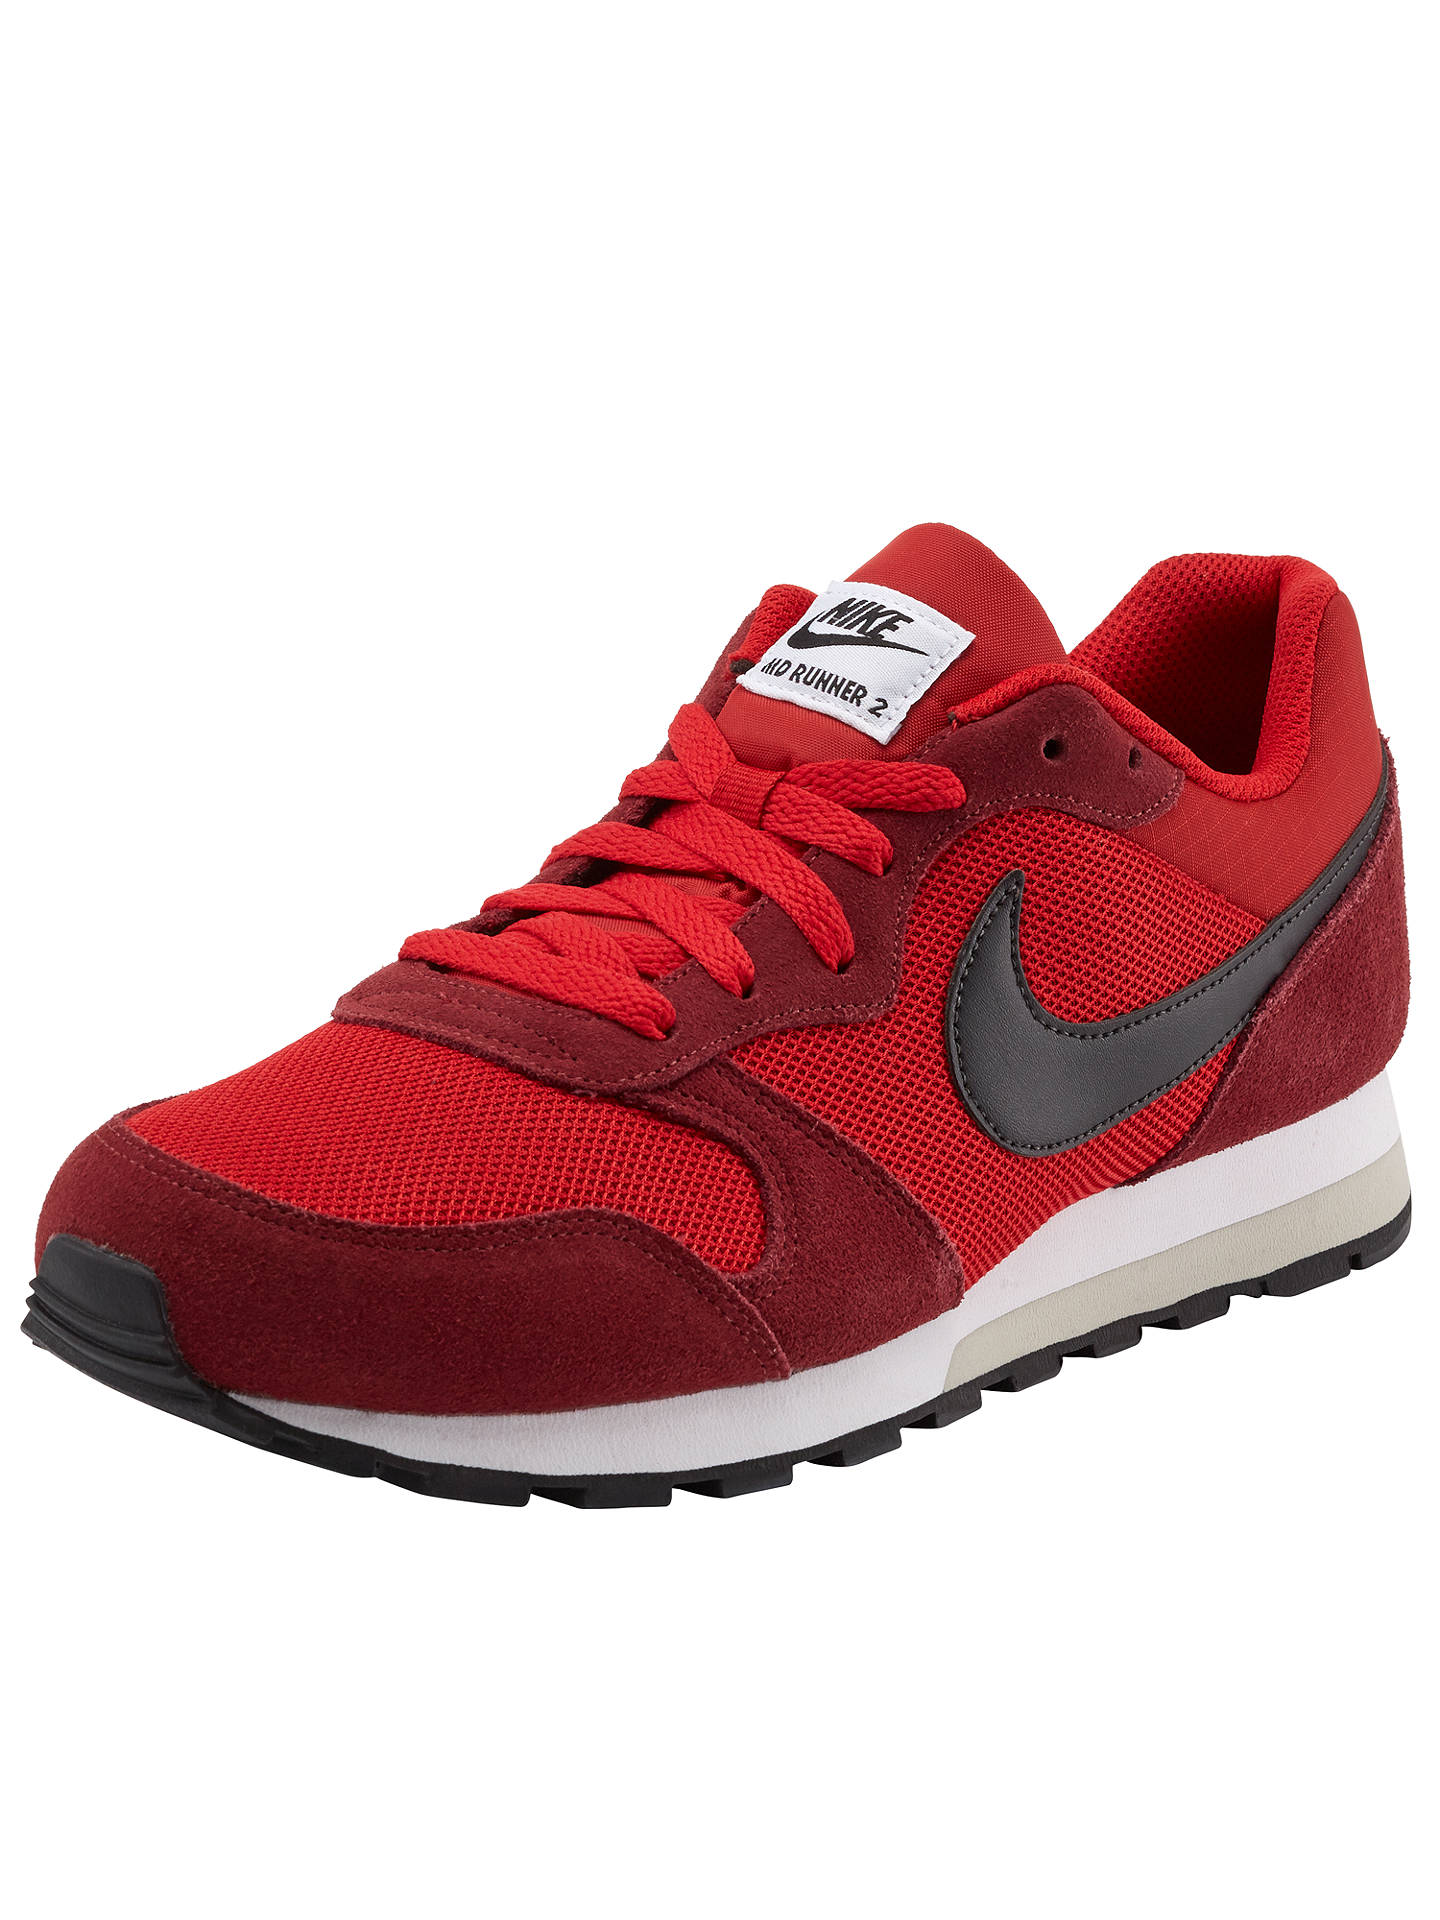 3a79b931f9 Buy Nike MD Runner 2 Trainers